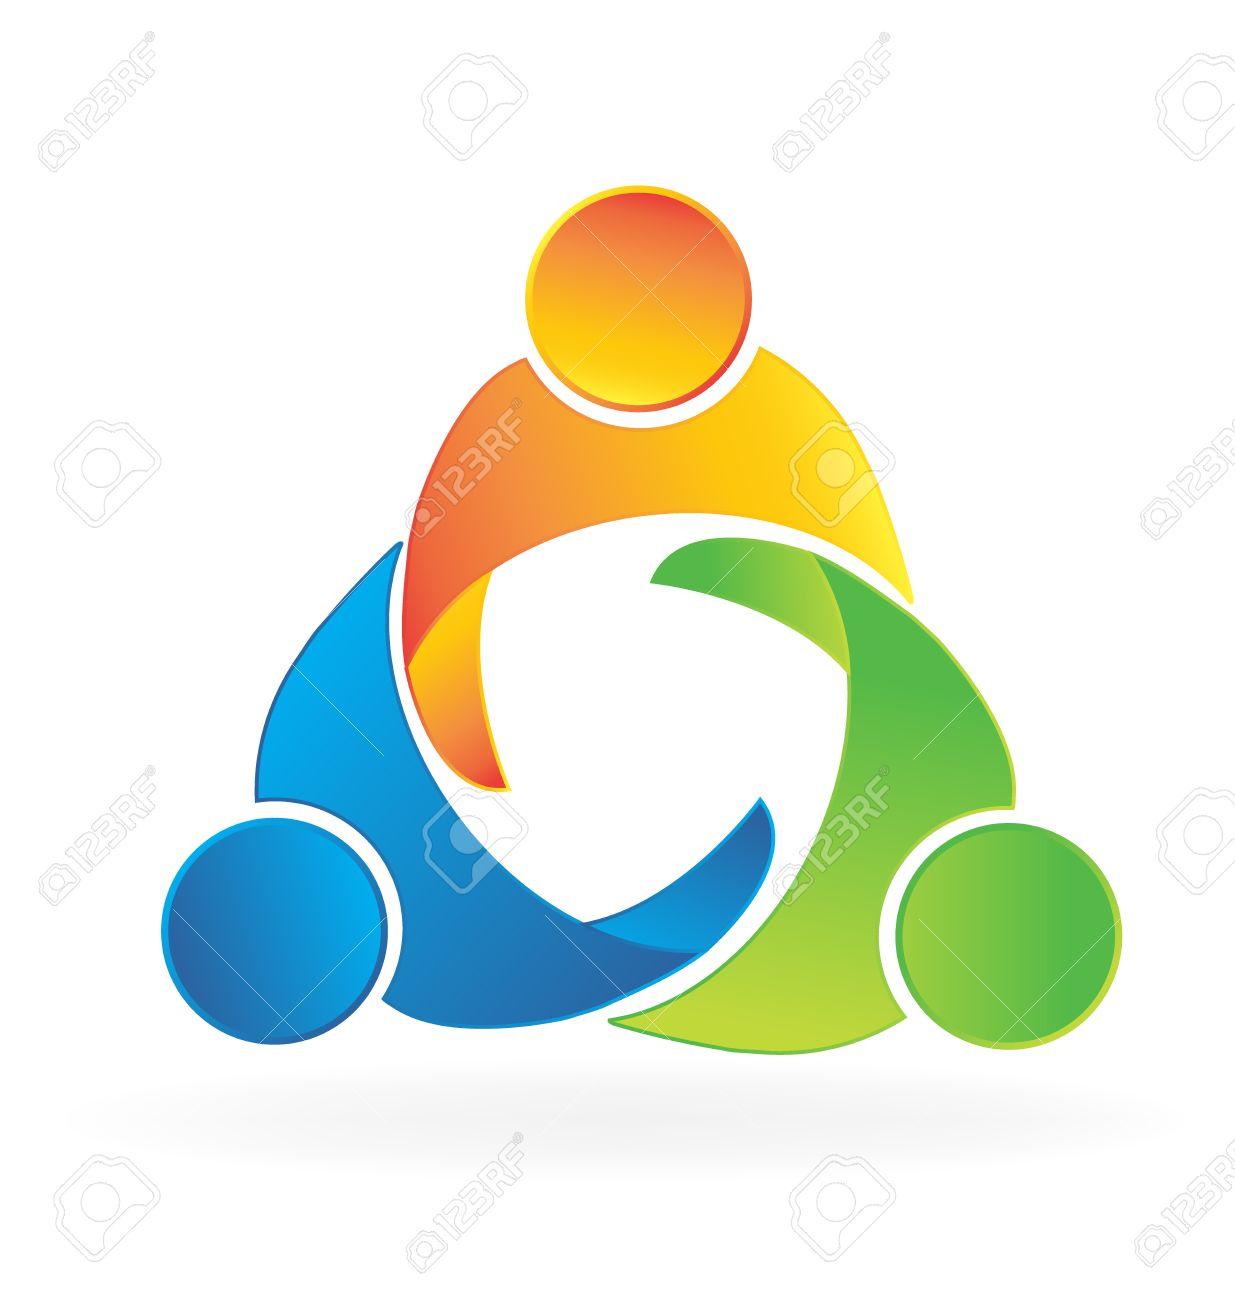 teamwork business trial partners people holding hands logo icon rh br 123rf com Hands Holding Heart Logo People Holding Hands Logo